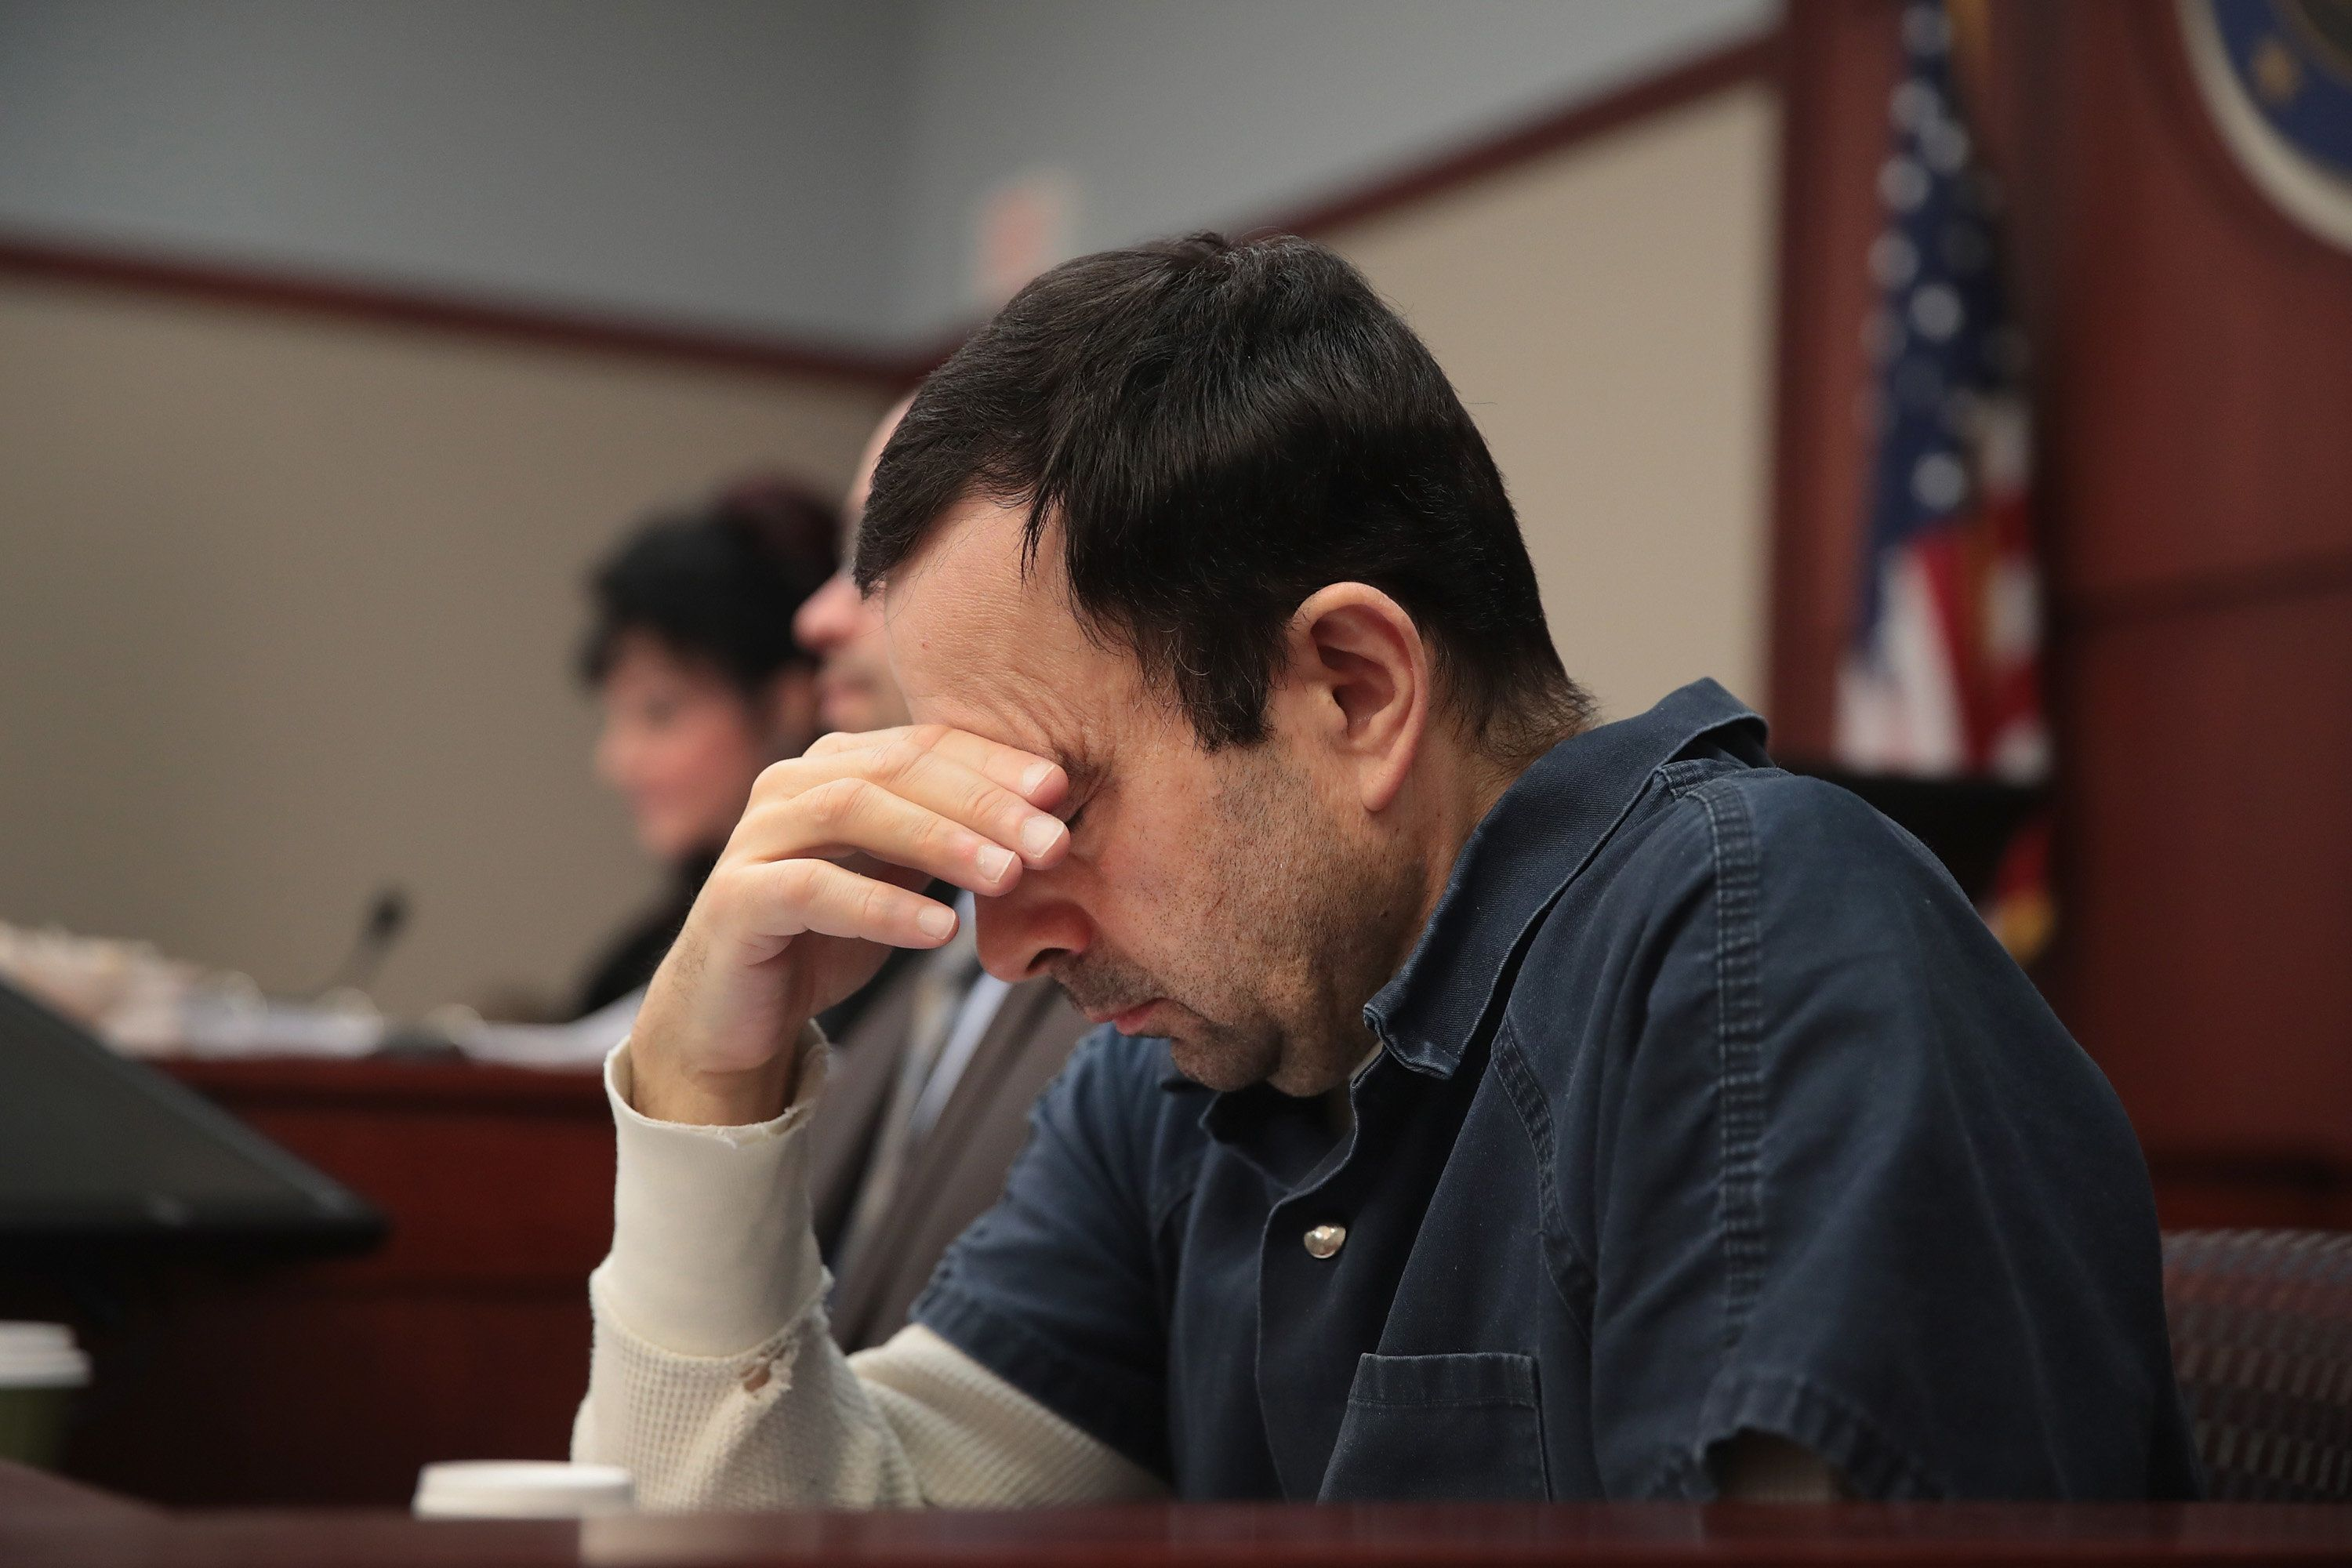 LANSING, MI - JANUARY 17:  Larry Nassar listens to  victim impact statements during his sentencing hearing after being accused of molesting more than 100 girls while he was a physician for USA Gymnastics and Michigan State University where he had his sports-medicine practice on January 17, 2018 in Lansing, Michigan. Nassar has pleaded guilty in Ingham County, Michigan, to sexually assaulting seven girls, but the judge is allowing all his accusers to speak. Nassar is currently serving a 60-year sentence in federal prison for possession of child pornography.  (Photo by Scott Olson/Getty Images)